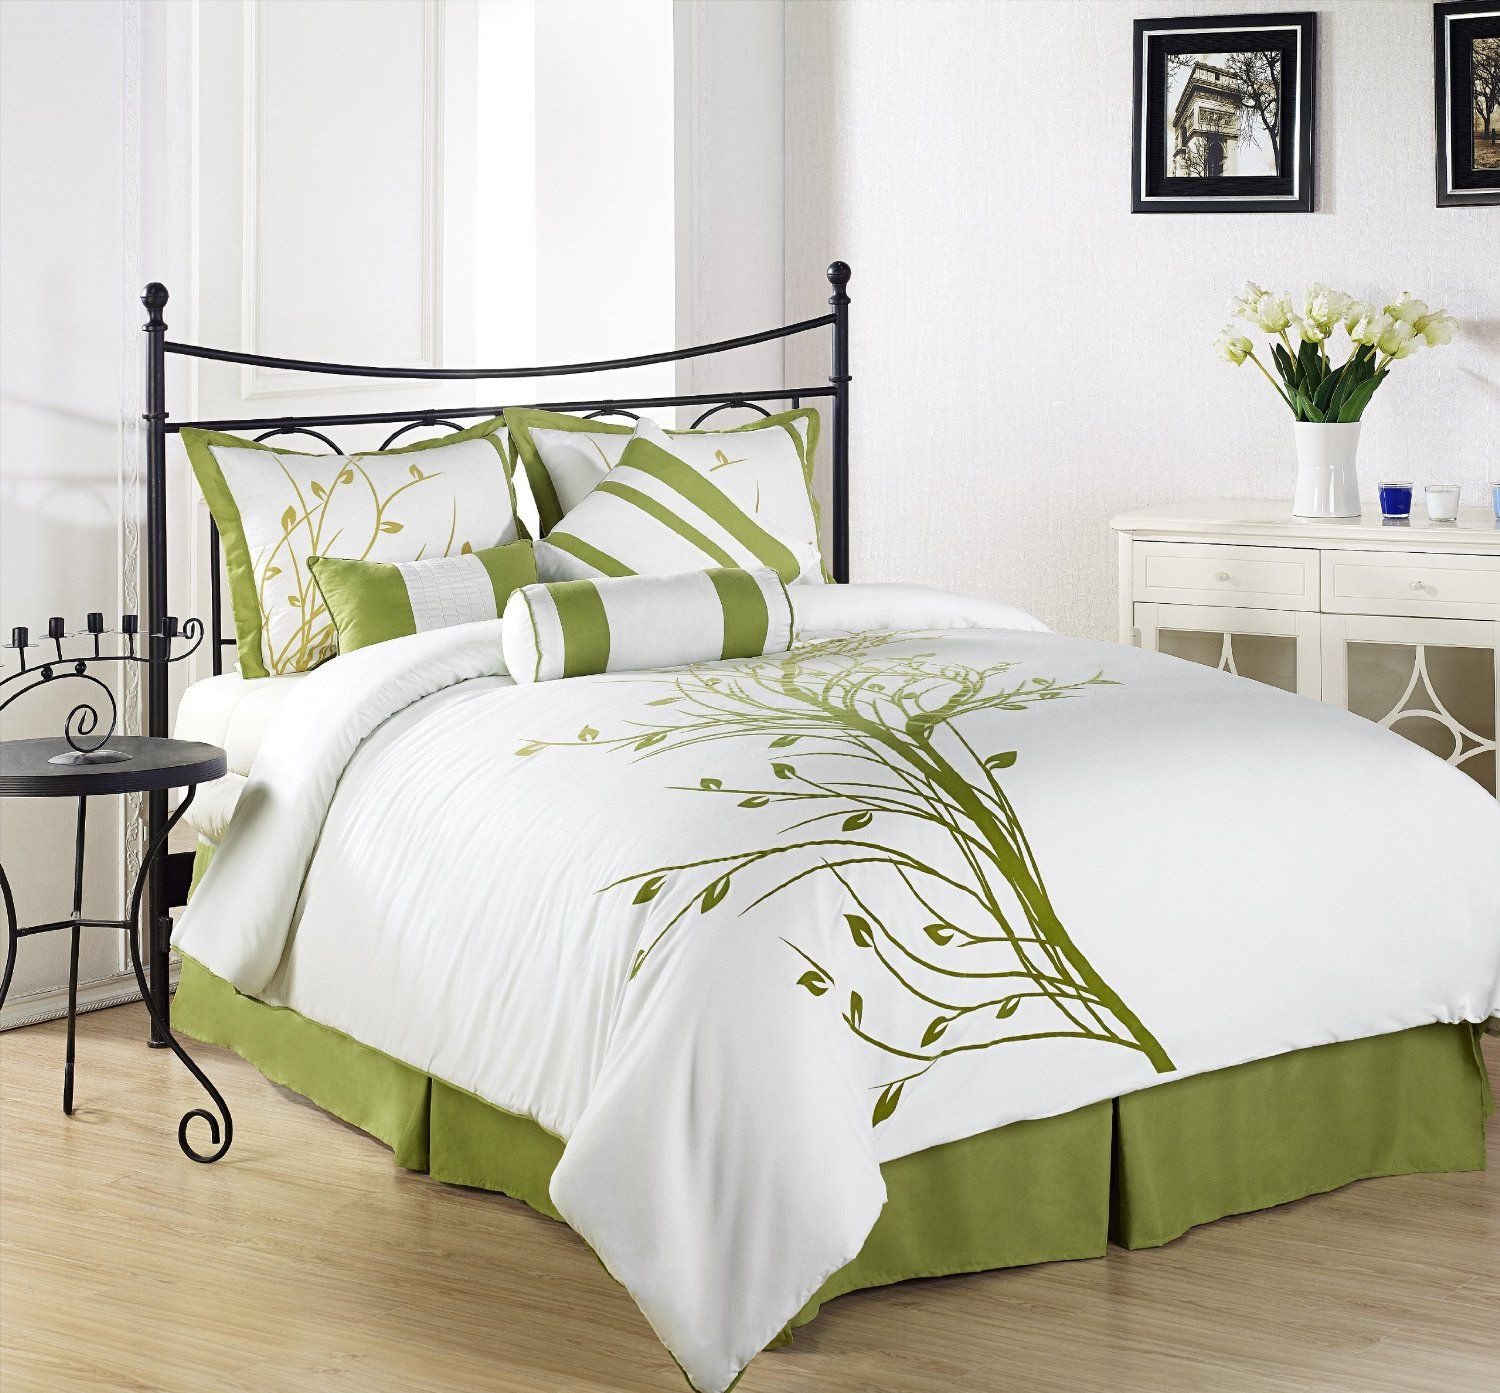 Bedroom colors green and white - Chezmoi Collection 7 Pieces Green Tree On White Queen Comforter Set